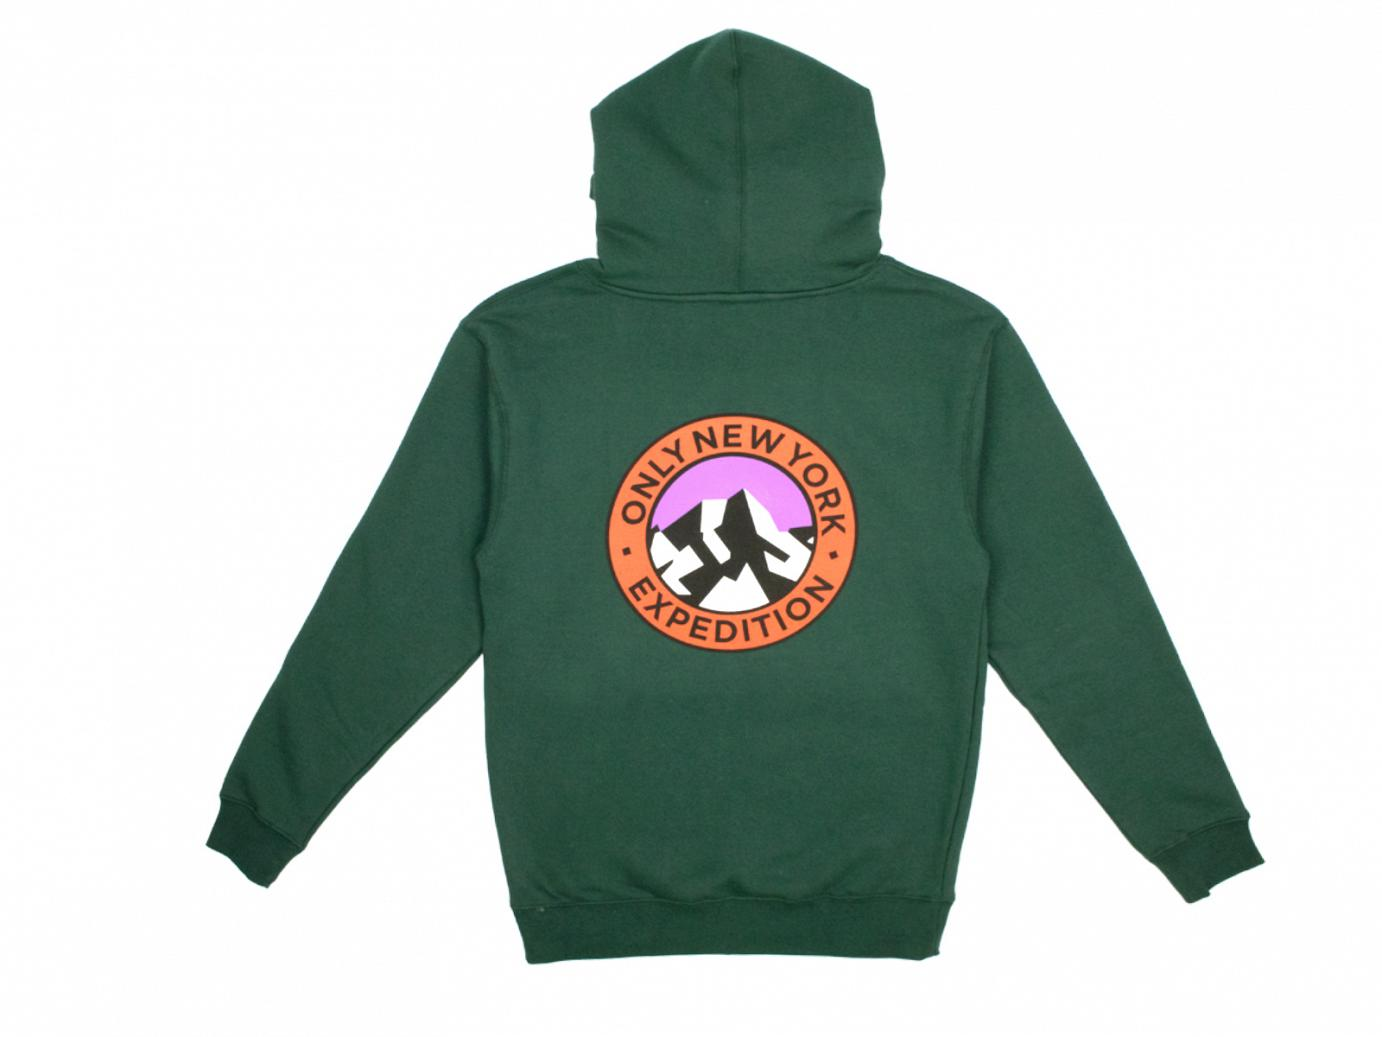 expedition hoodie